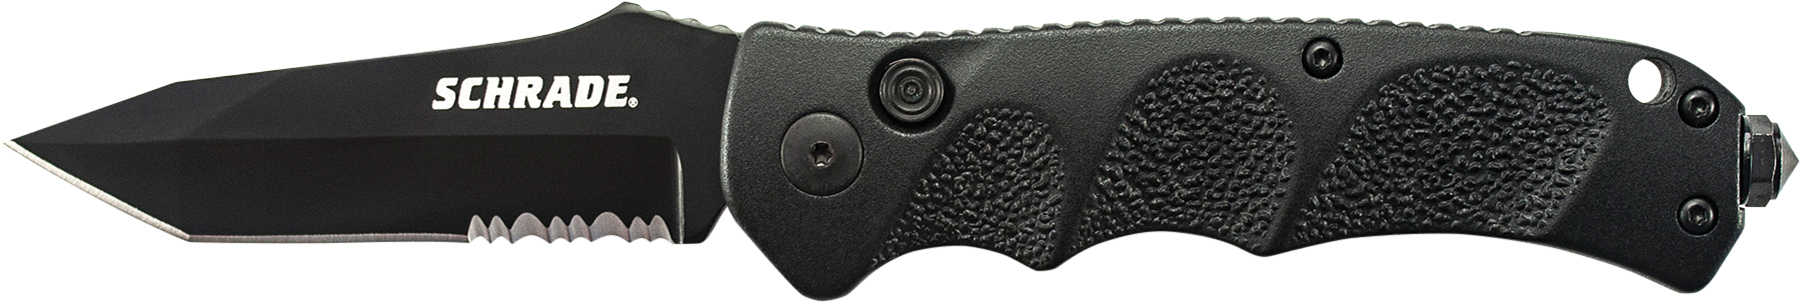 SC60BTS - Schrade Black Tanto 40% Serrated 4116 Steel, Push Button Lock, Safety On Back Of Handle